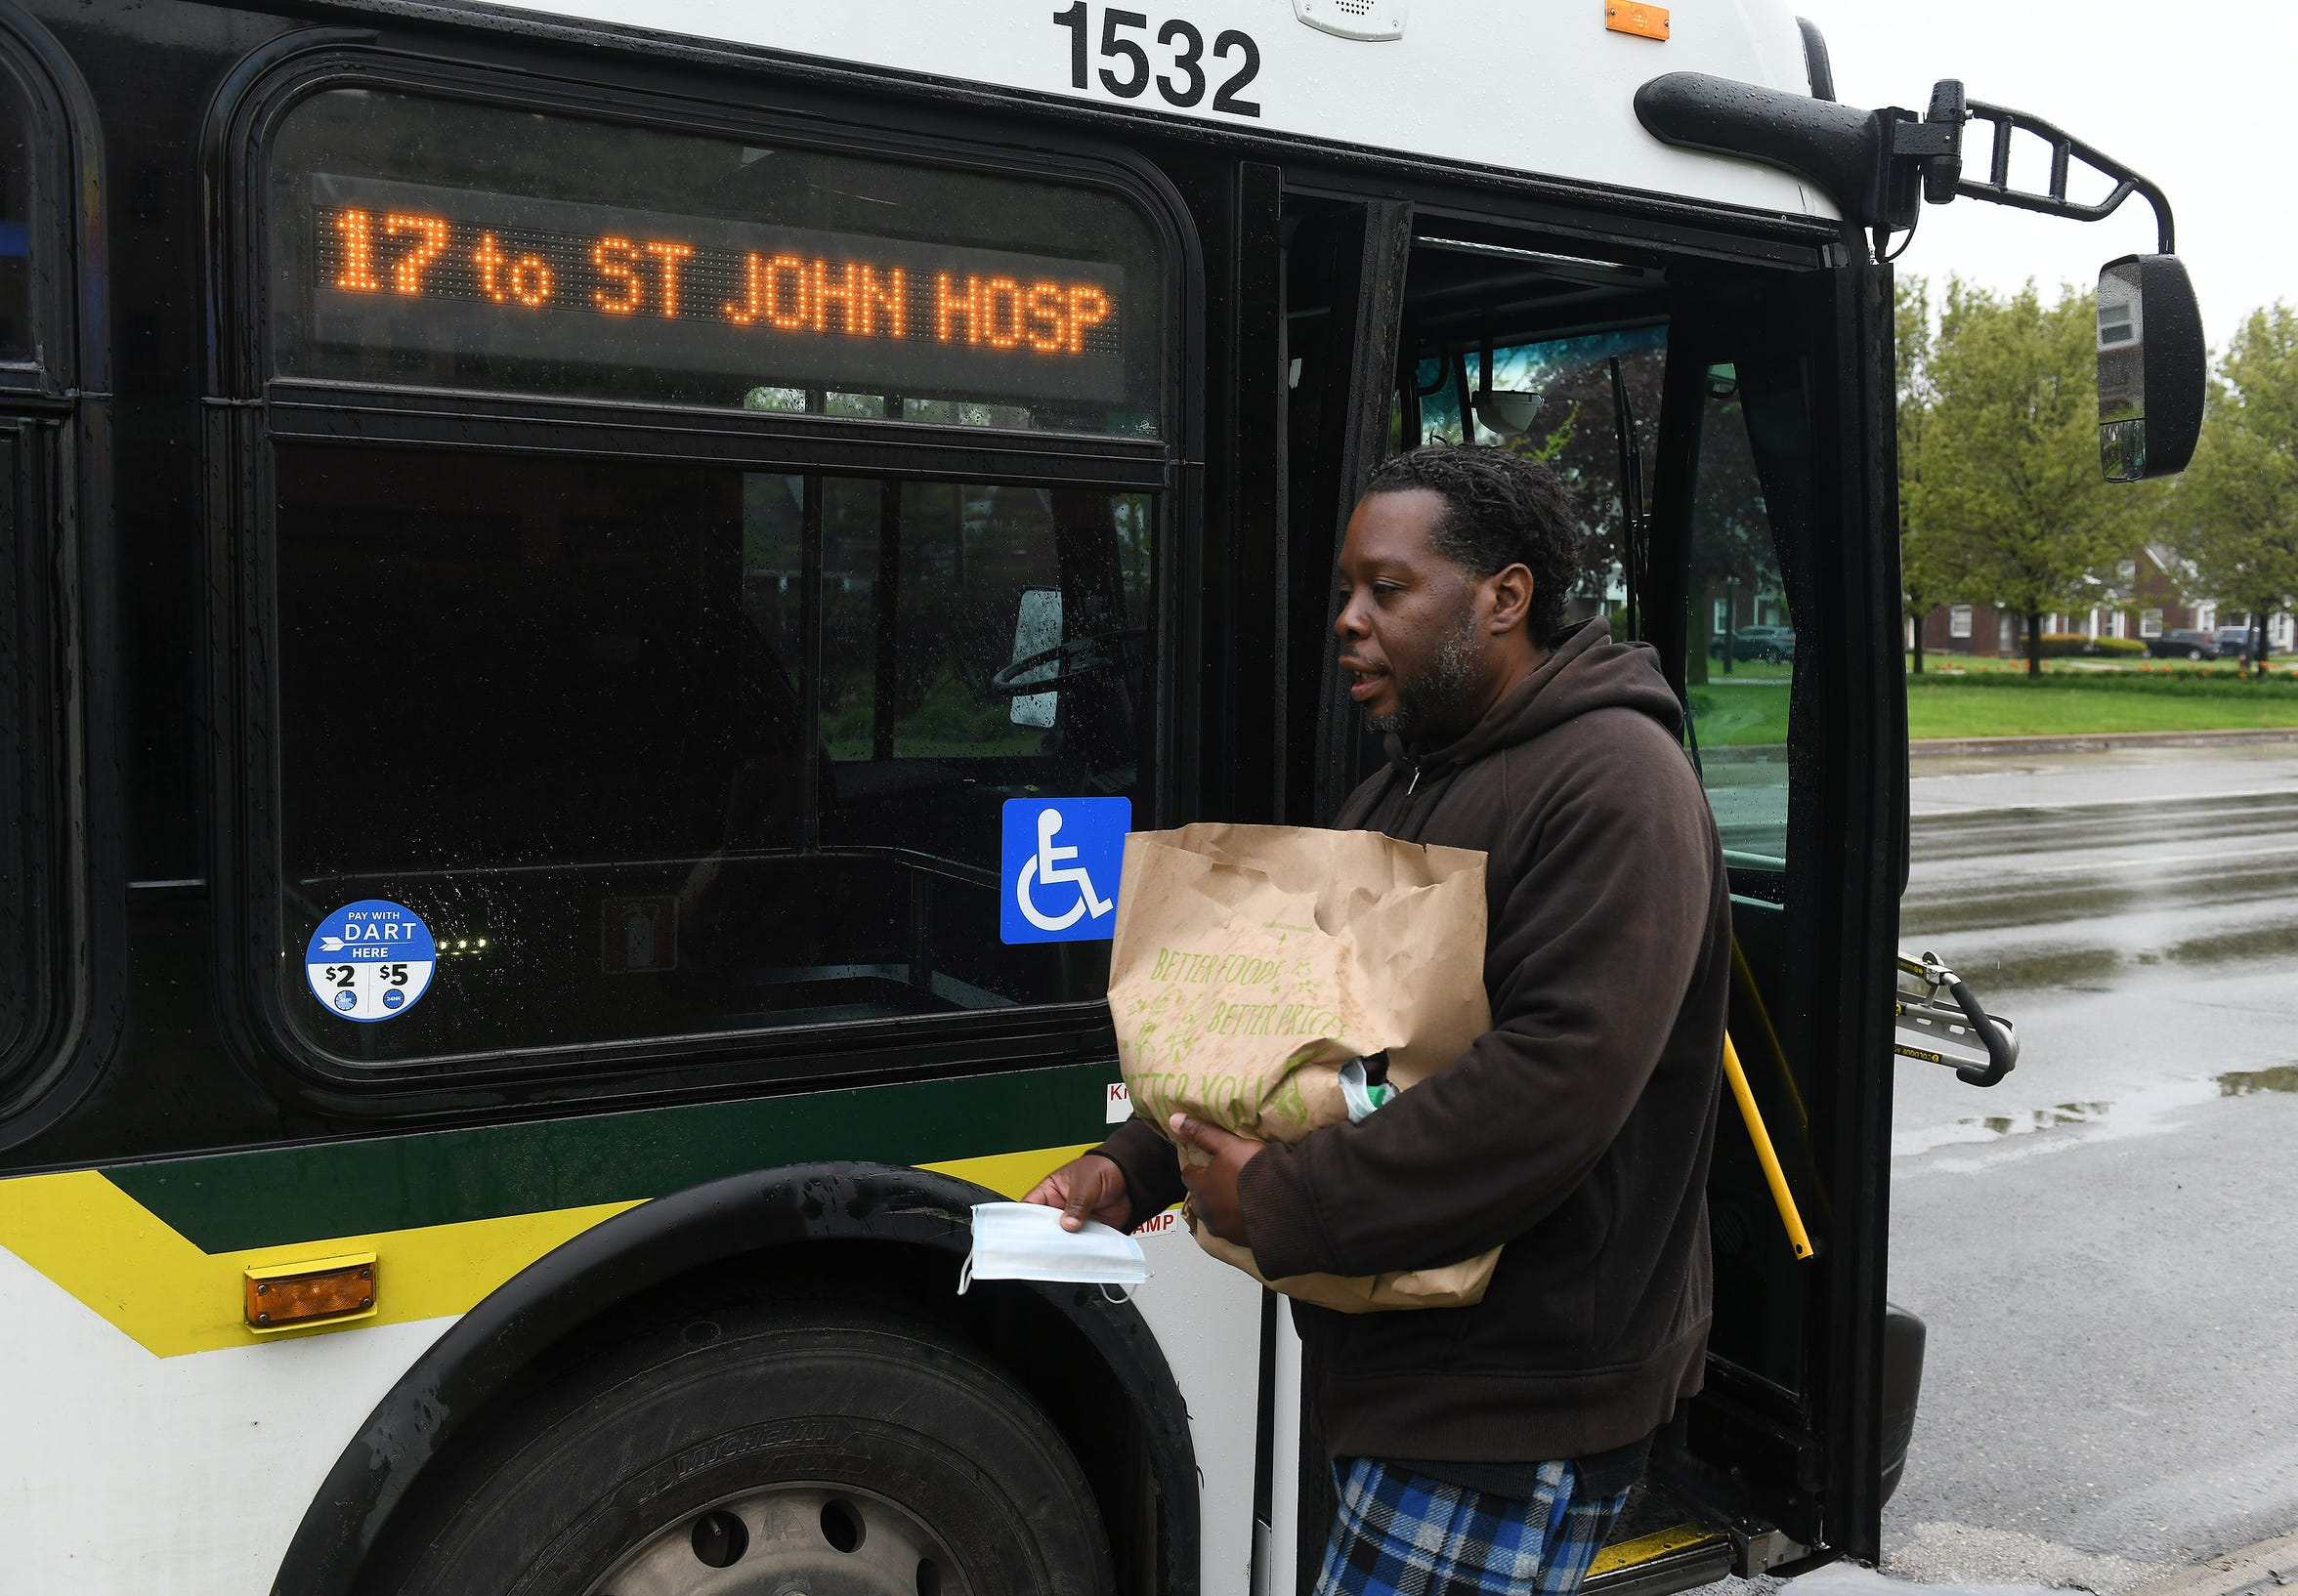 Raymoan Autrey, 48, of Detroit takes the mask given to him by the bus driver before he enters the 17 bus in Detroit on May 18, 2020. To protect the health and safety of its customers and employees, DDOT is temporarily suspending fare collection for all trips and requesting that customers limit non-essential bus travel until further notice.